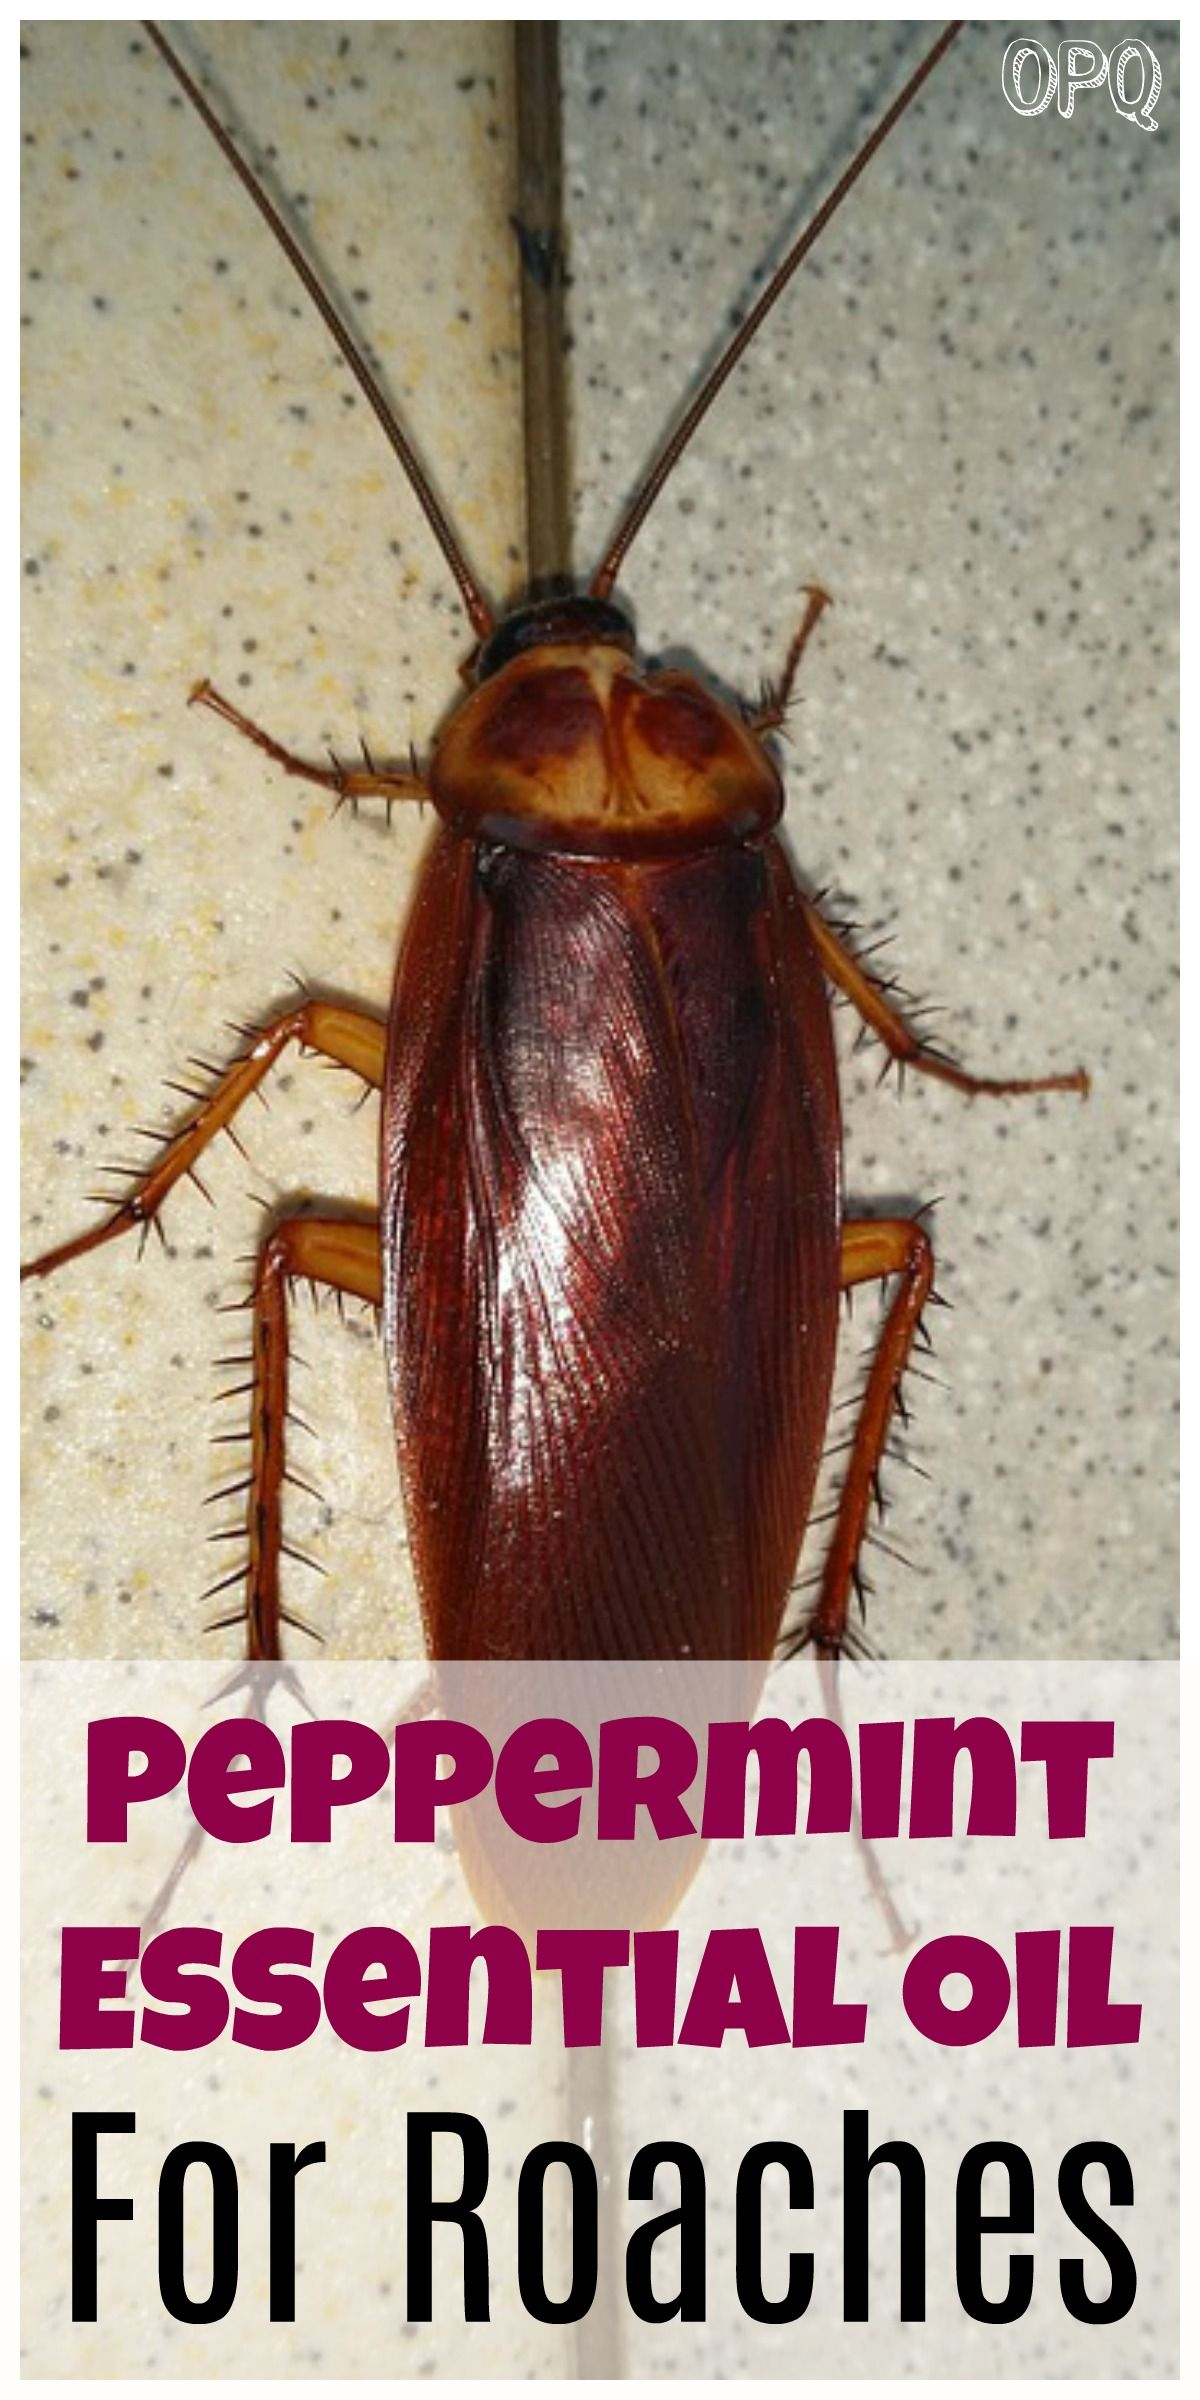 Peppermint Oil For Roaches Oils Essential Oils Roaches Indoor Plants